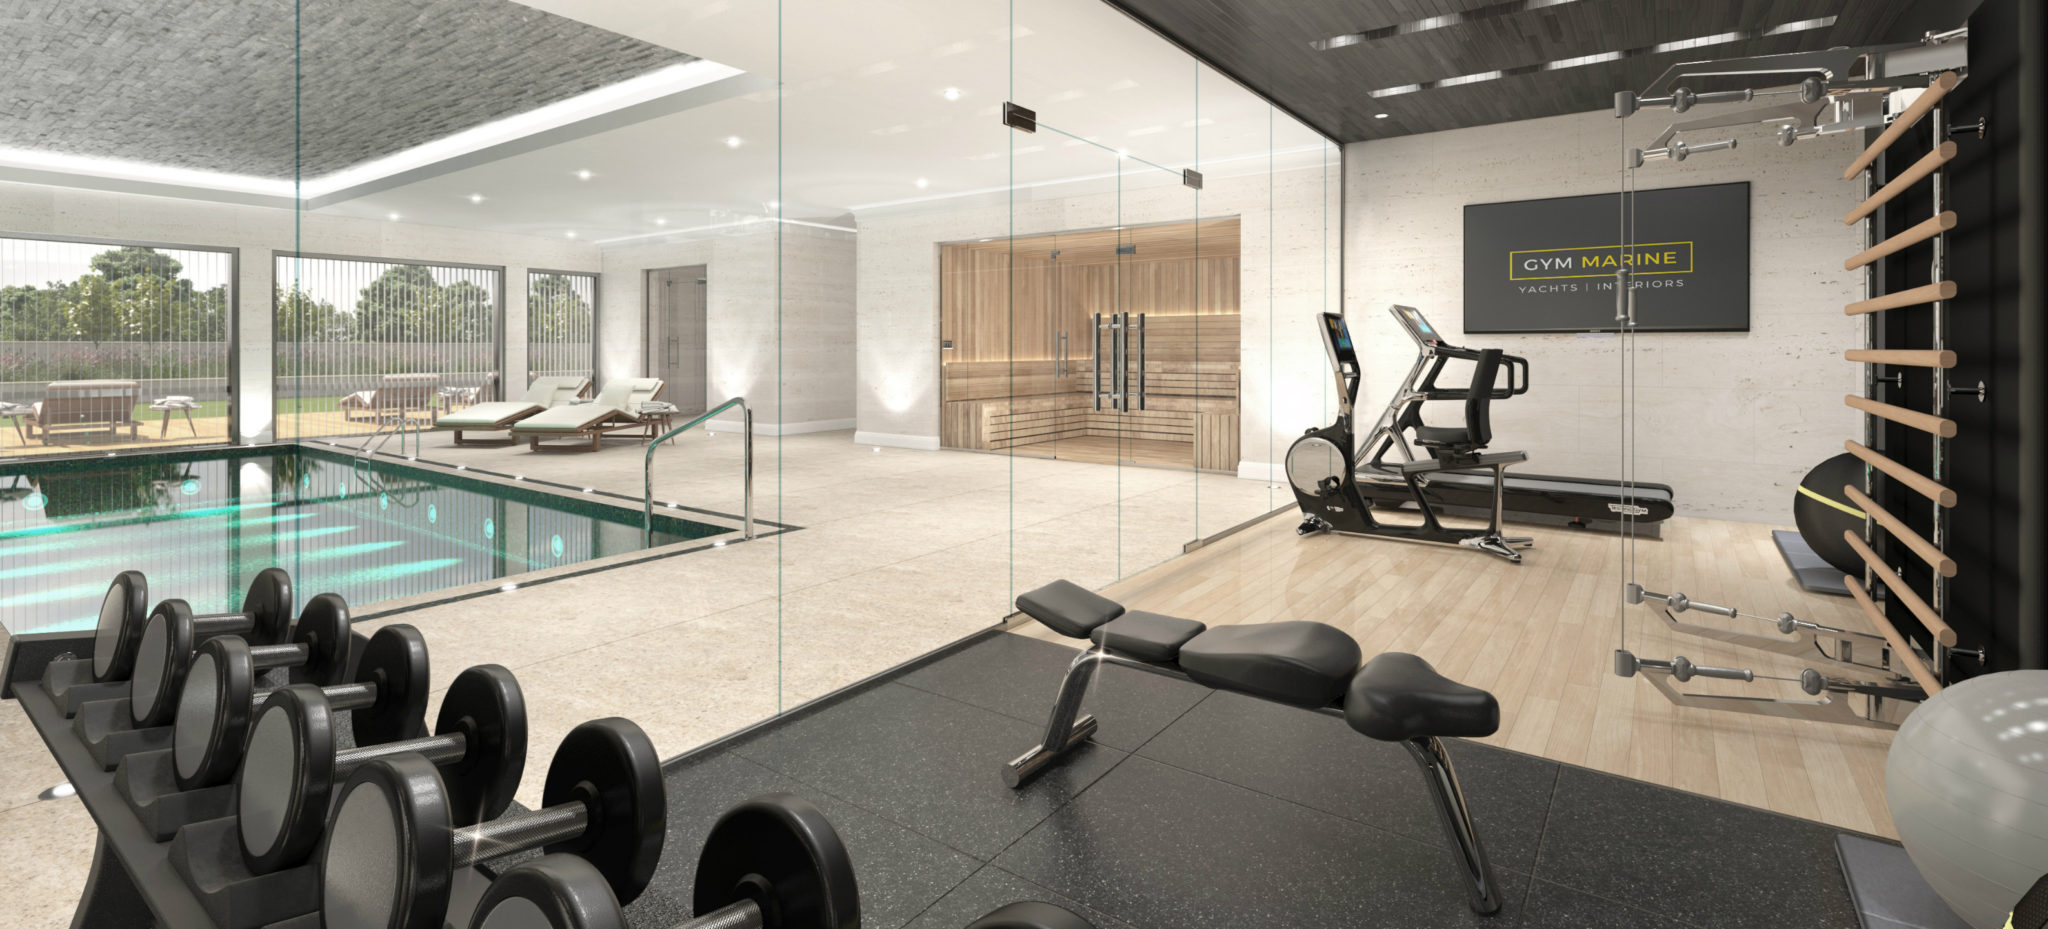 Superyacht Gym | Home Gym Design | Buy Gym Equipment - Gym Marine